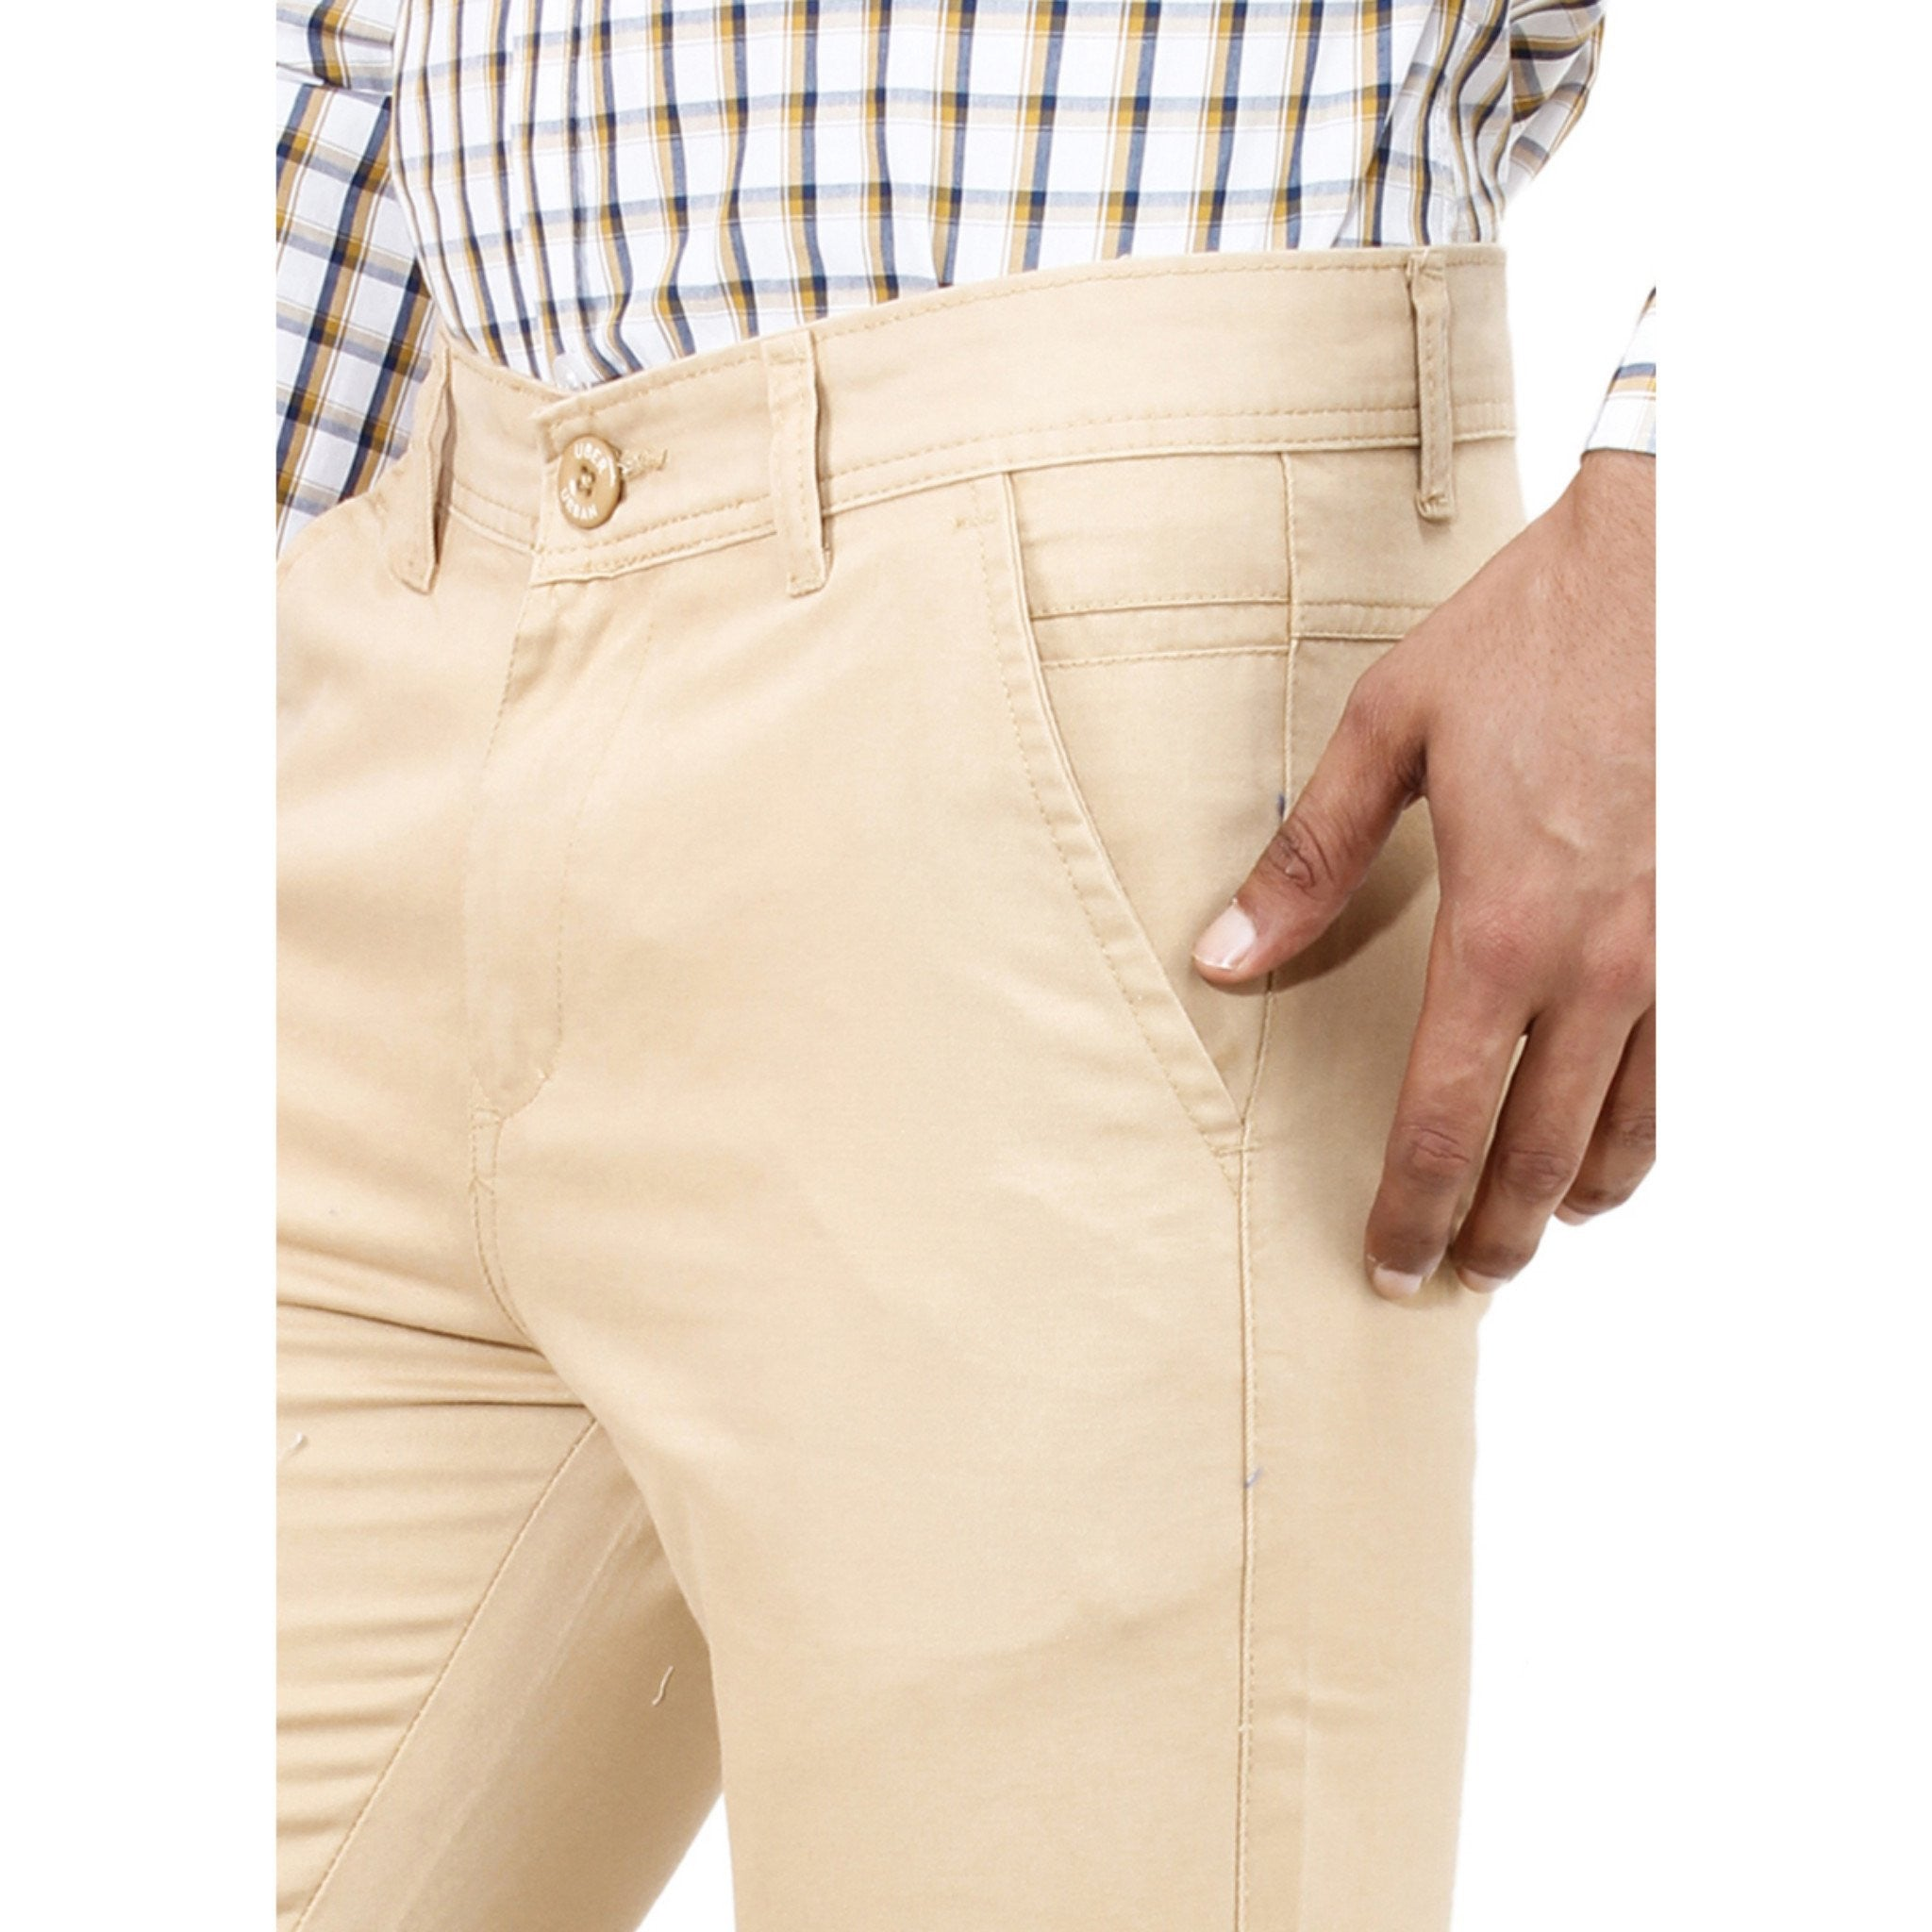 Uber Corn Silk Rocky Trouser close up view